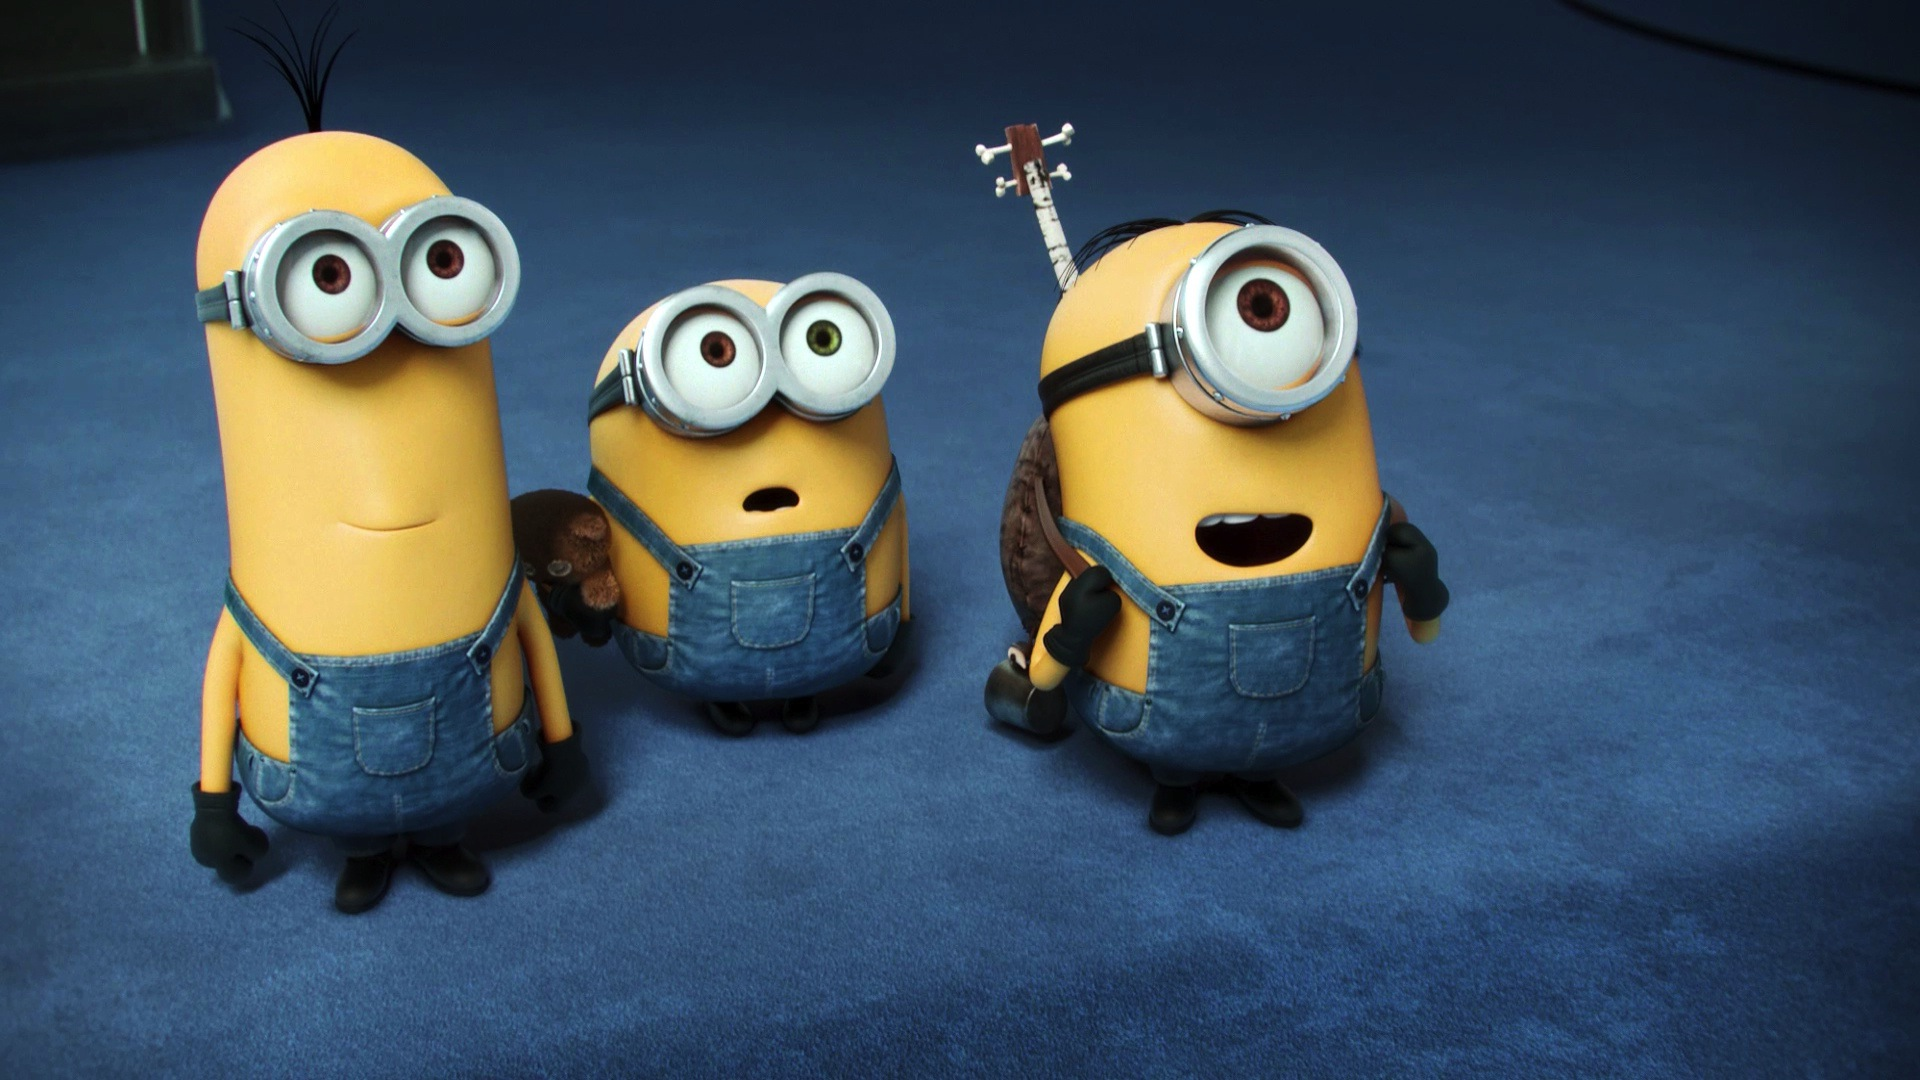 Cute Minions Wallpaper For Android Minion Wallpaper For Android